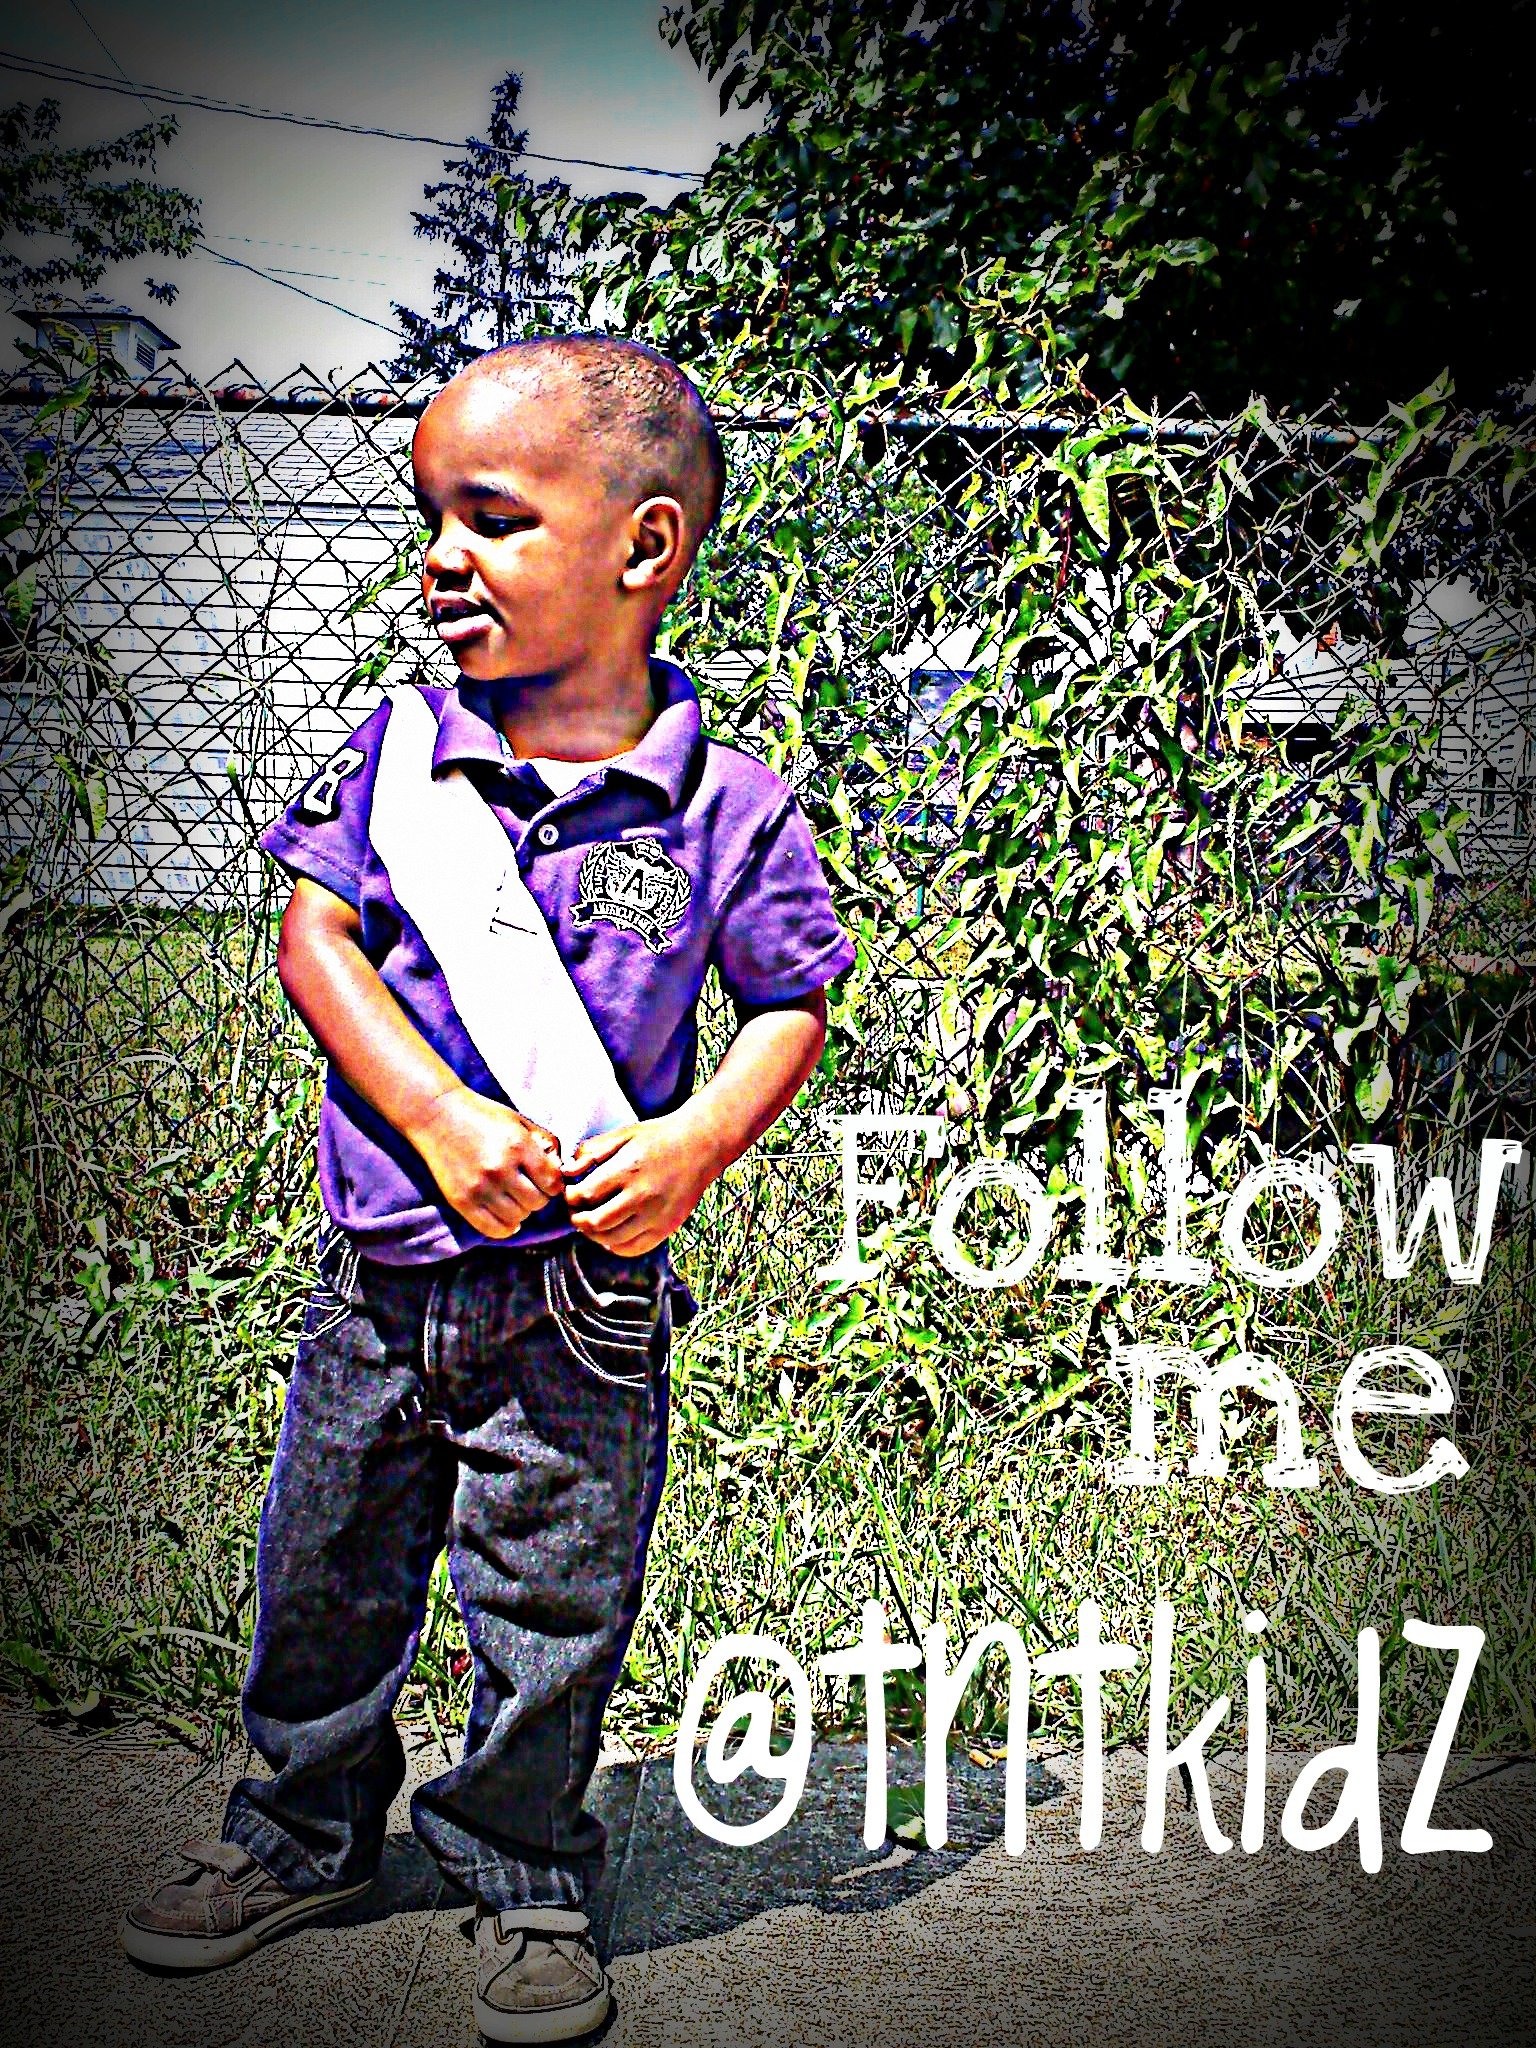 Follow Trenton Dior onhis twitter he is a 3 año old dancer/rapper on youtube